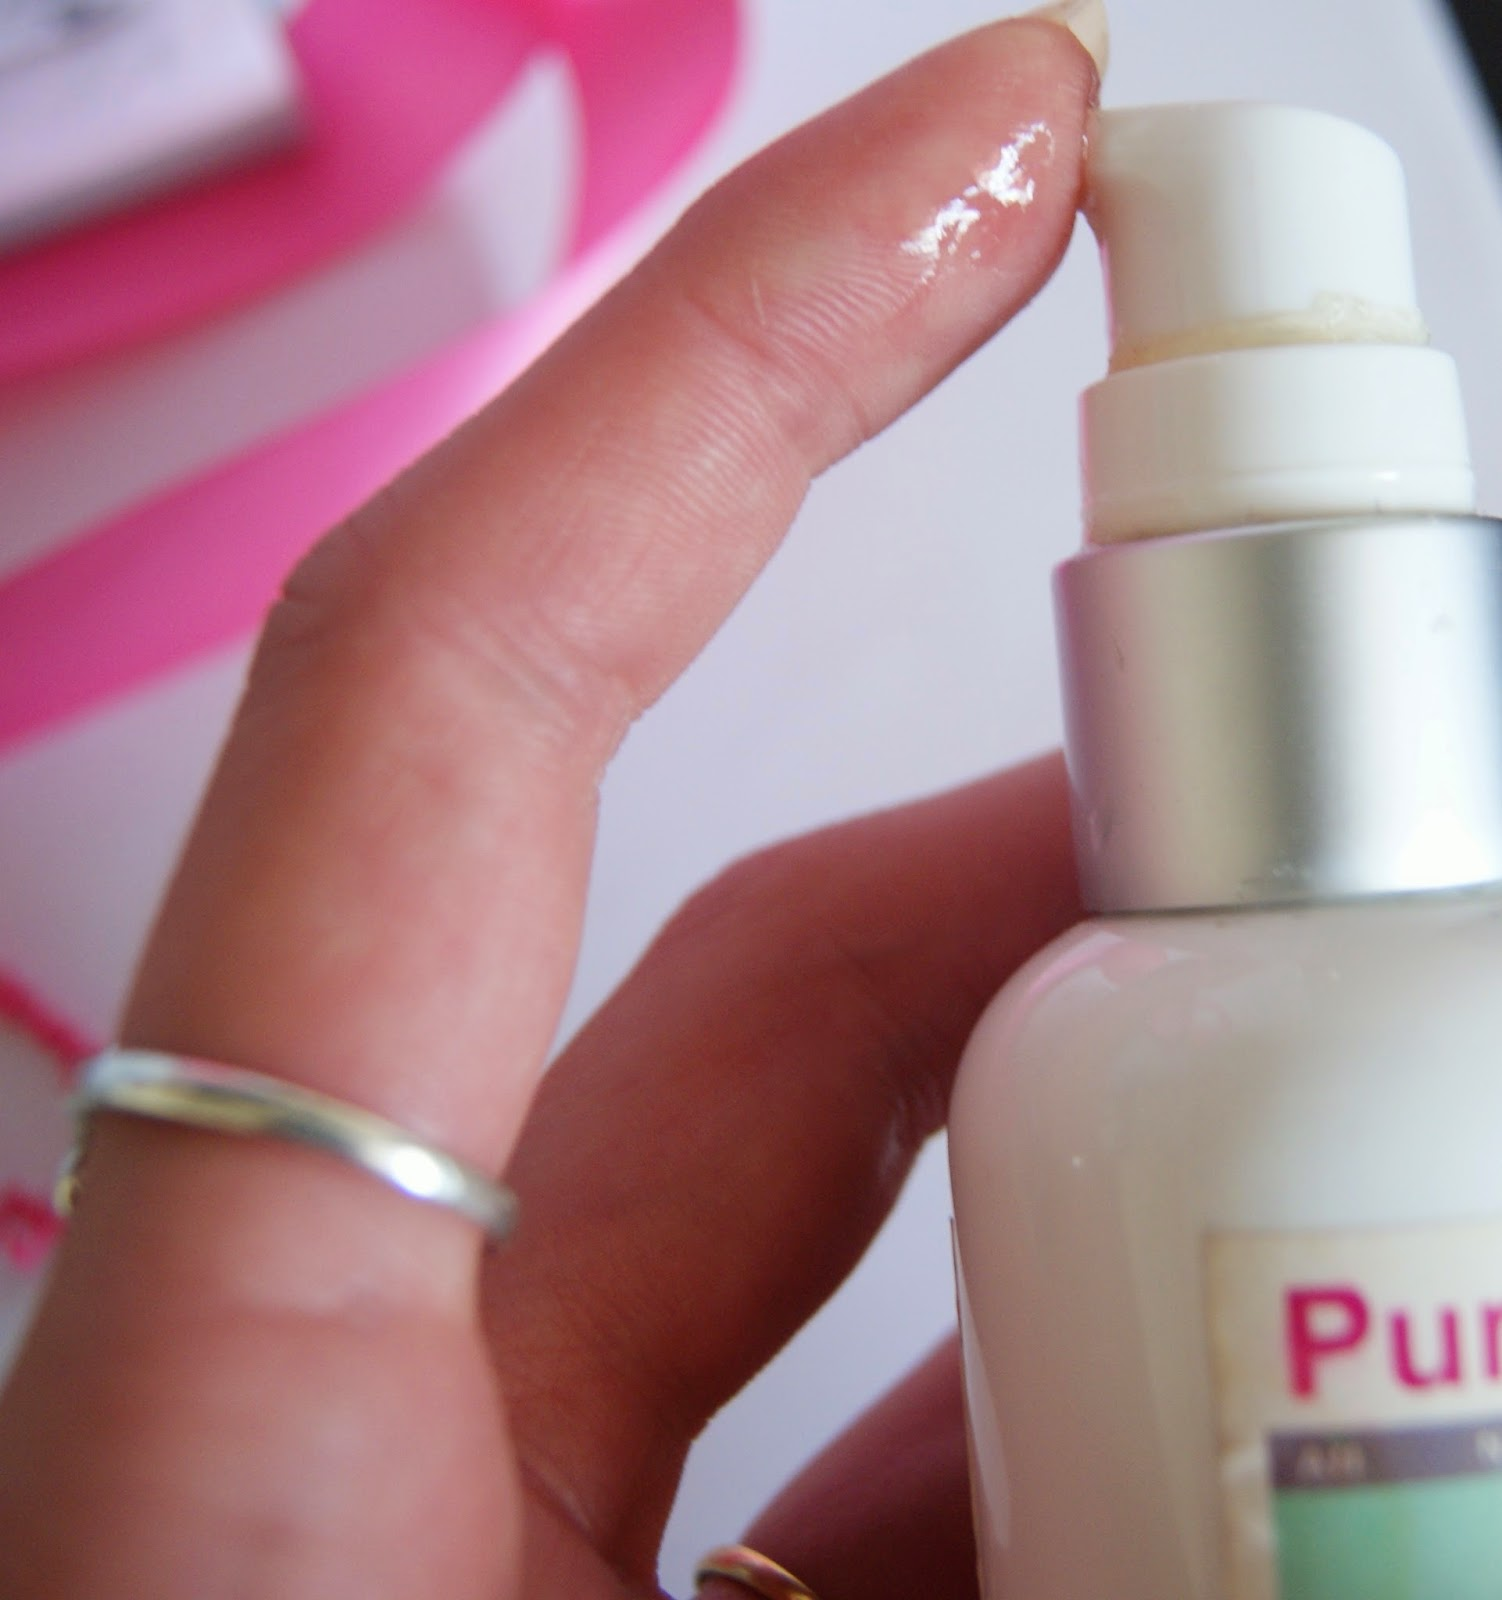 Pure + Simple Hydration Serum Review, Skincare, Beauty, Melanie_Ps, The Purple Scarf, Toronto, Ontario, Canada, Face, Facial, Skin, Blemishes, redness